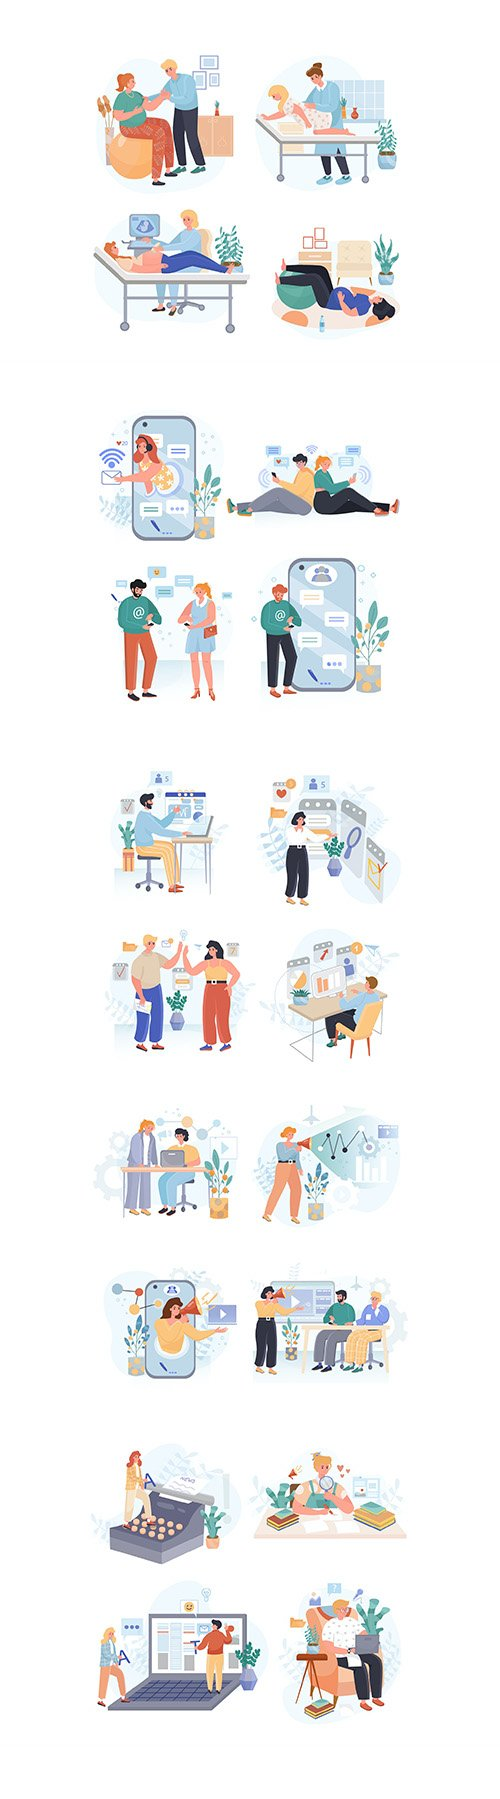 People activity illustrations set Vol2